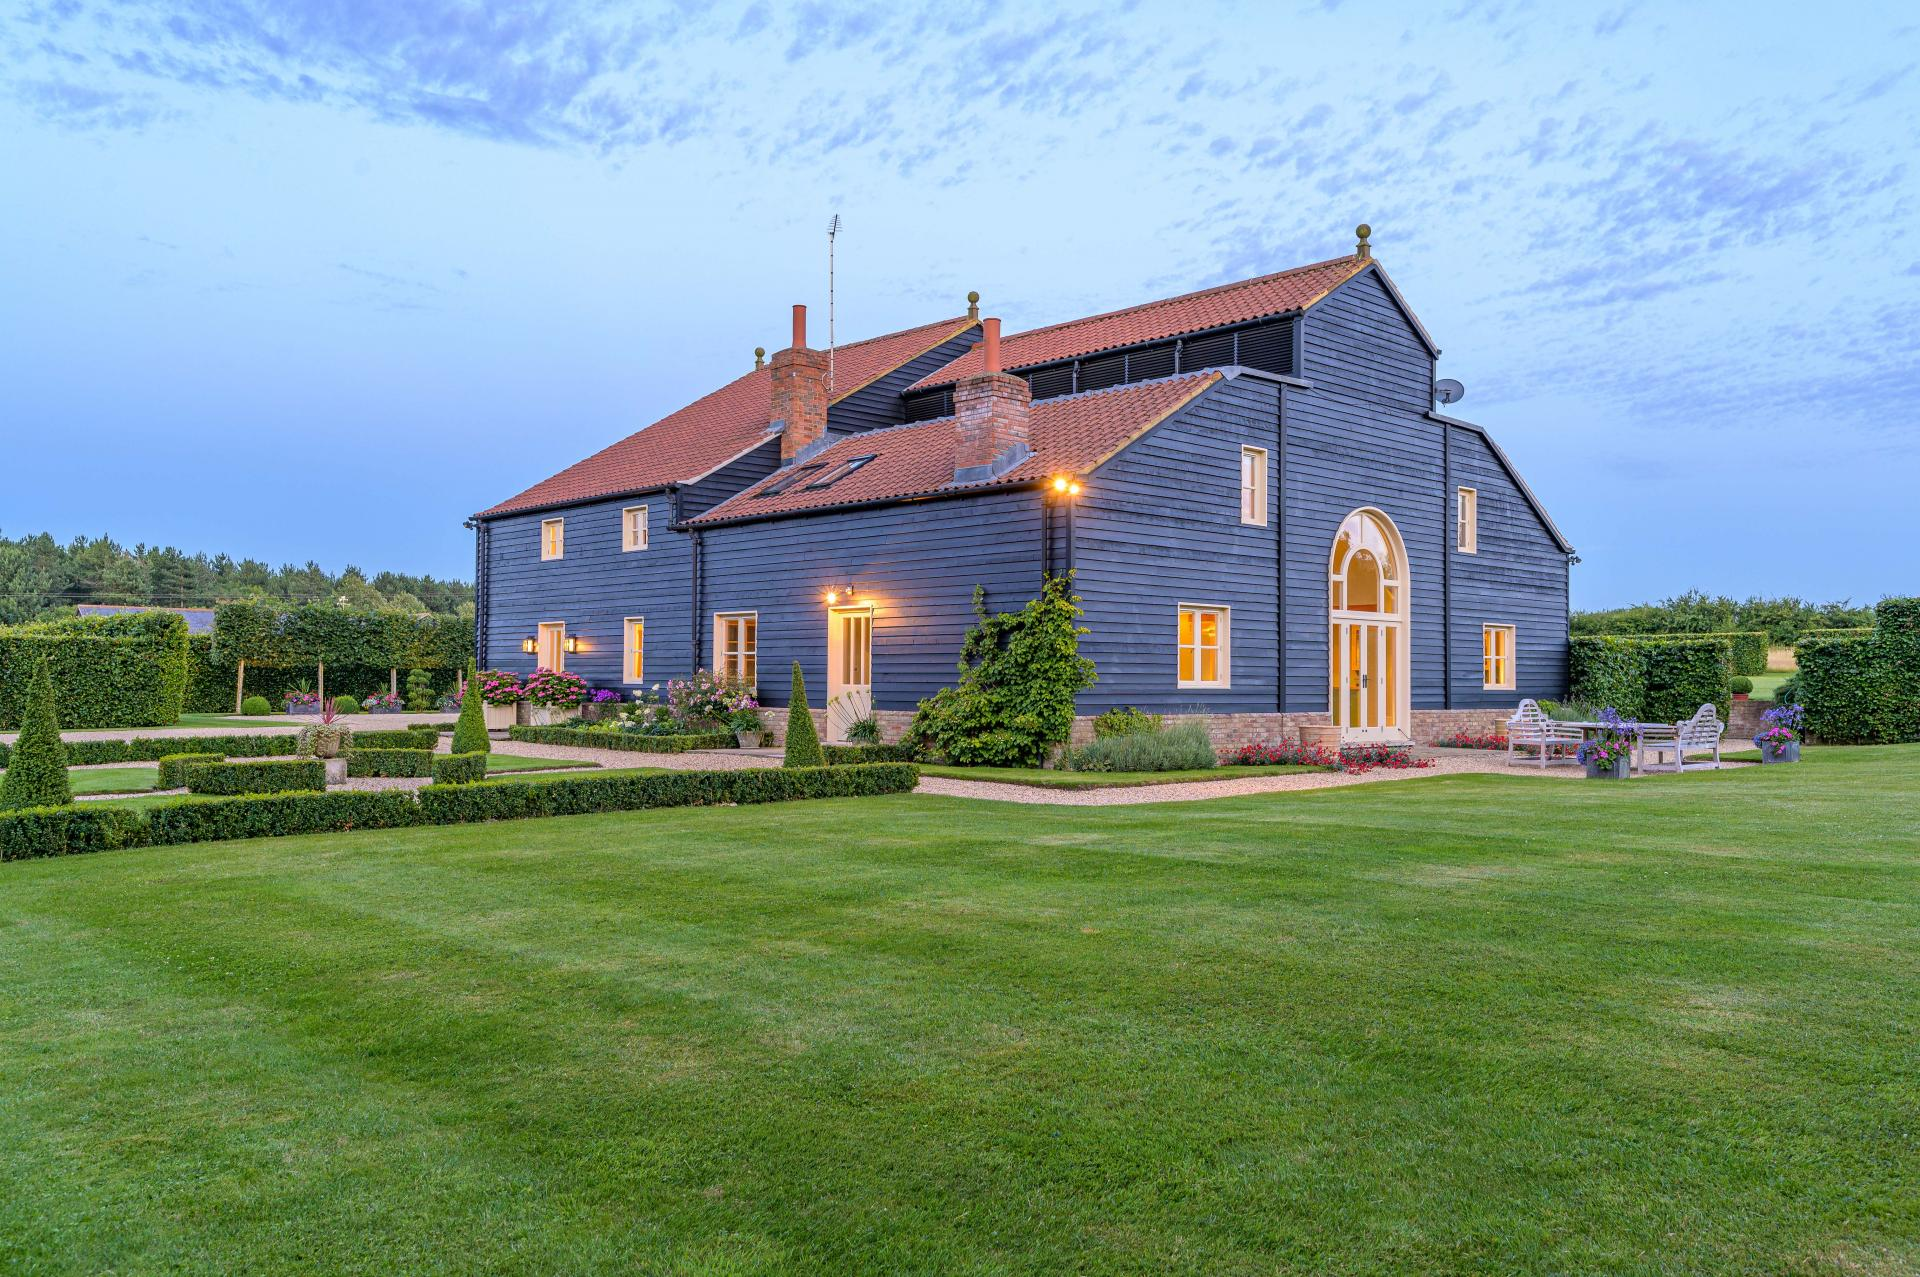 amazing Dutch Gabled barn house in countryside at dusk